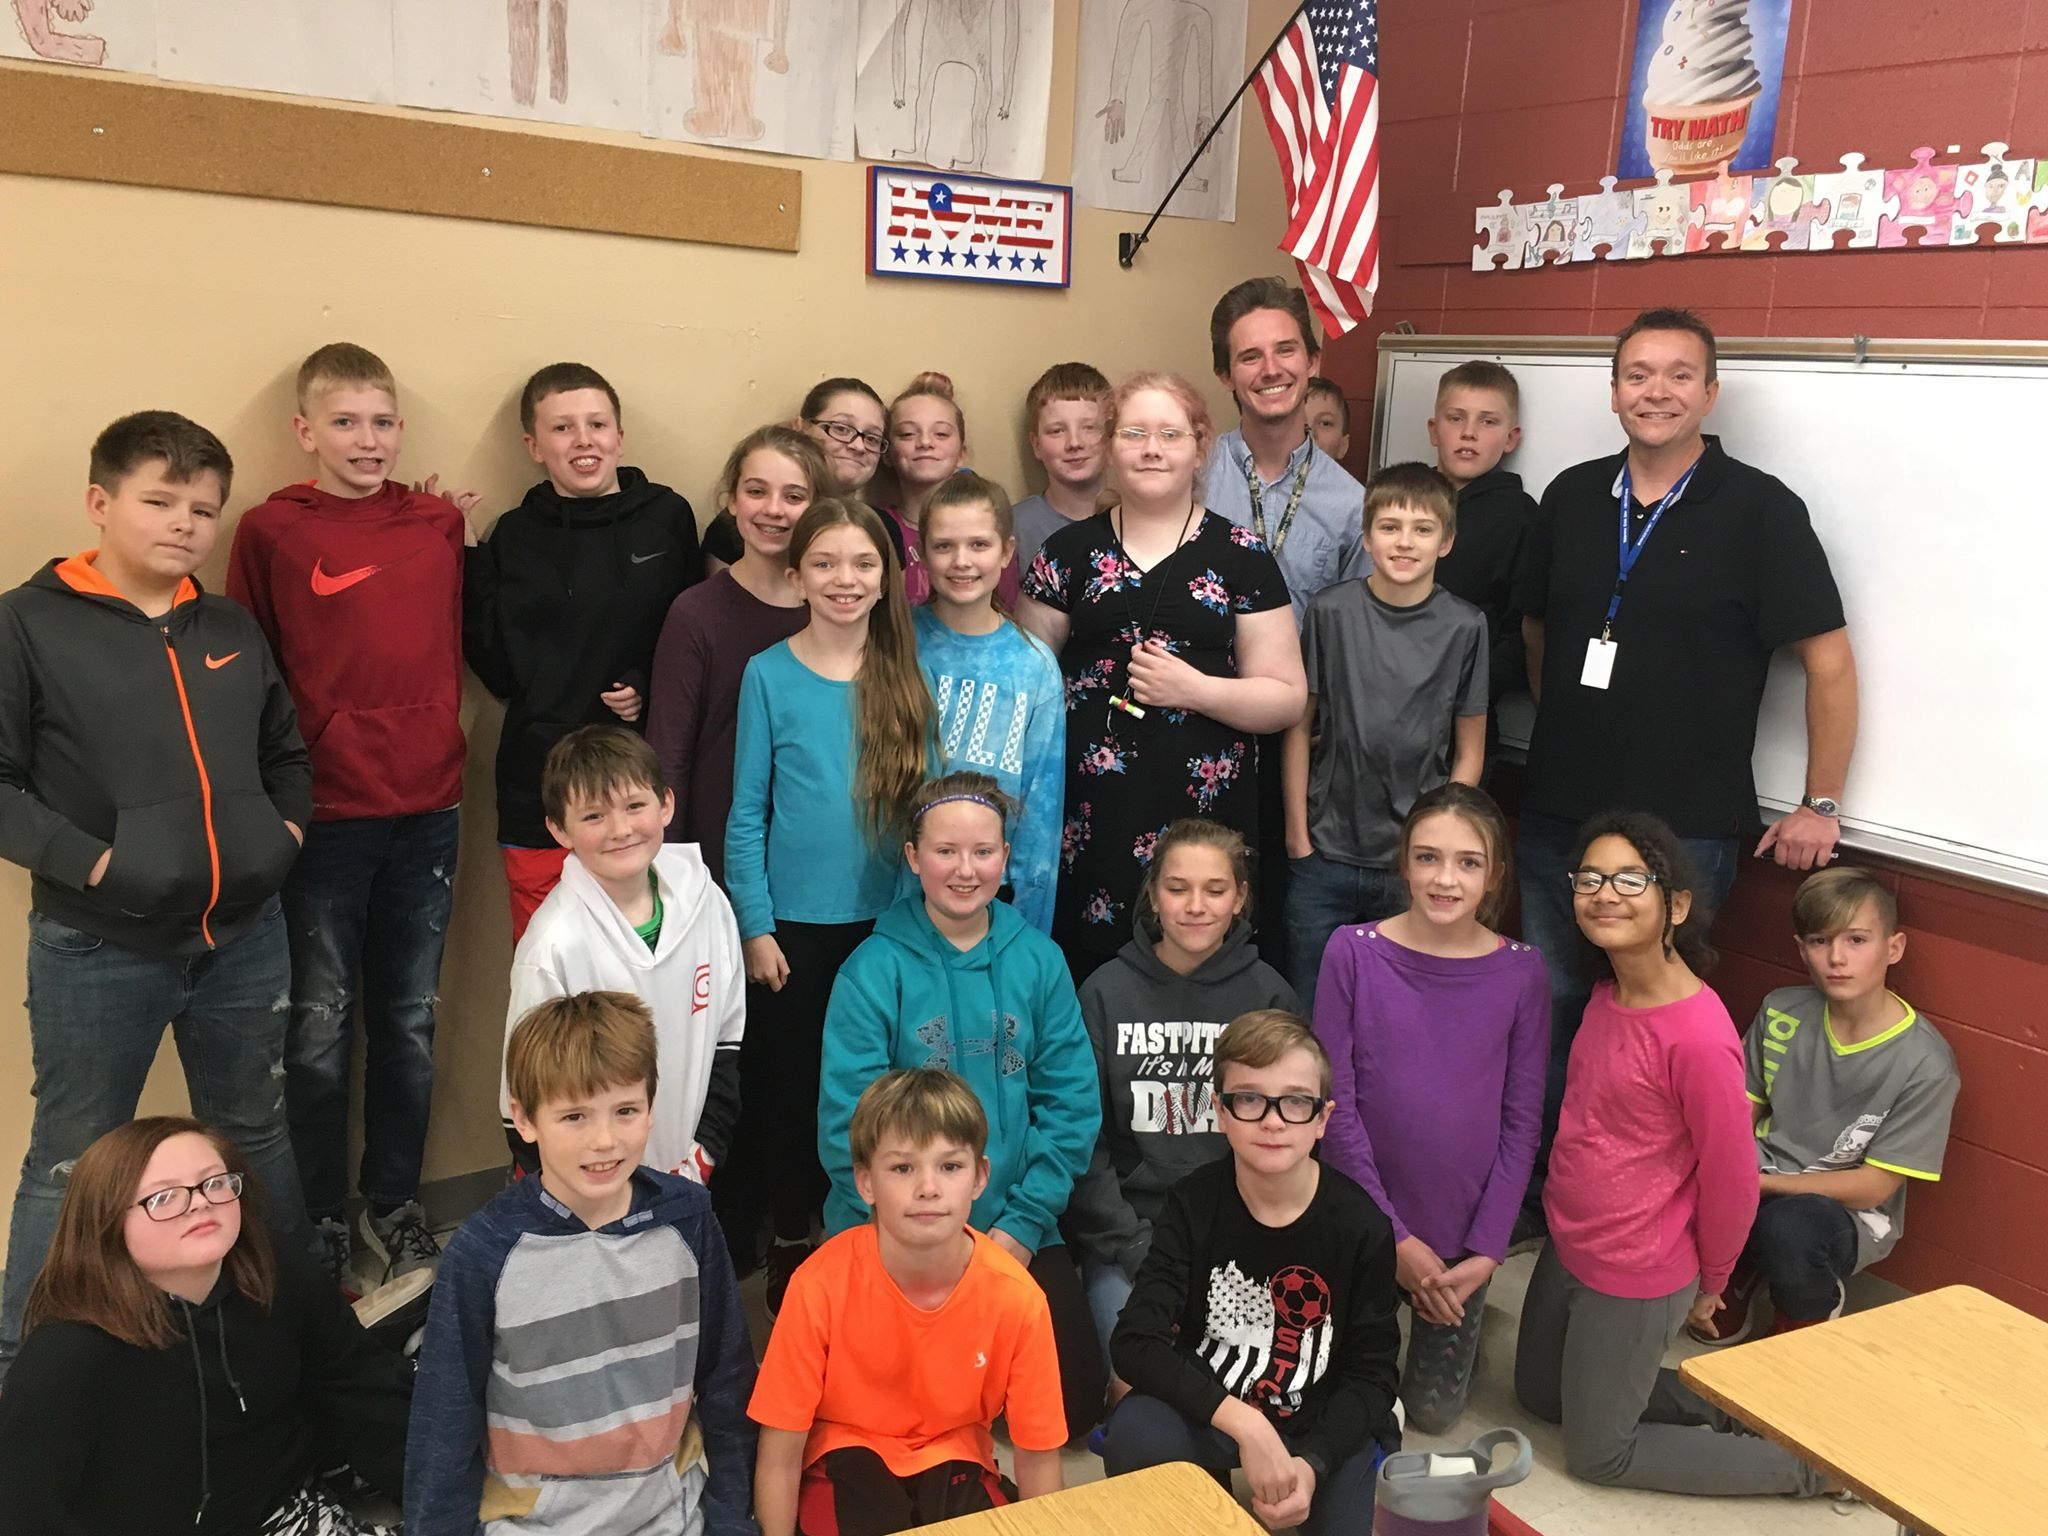 Calvin Cutler and Justin Wickersham visit with students at Sturgis Williams Middle School on Wednesday, Nov. 28, 2018.